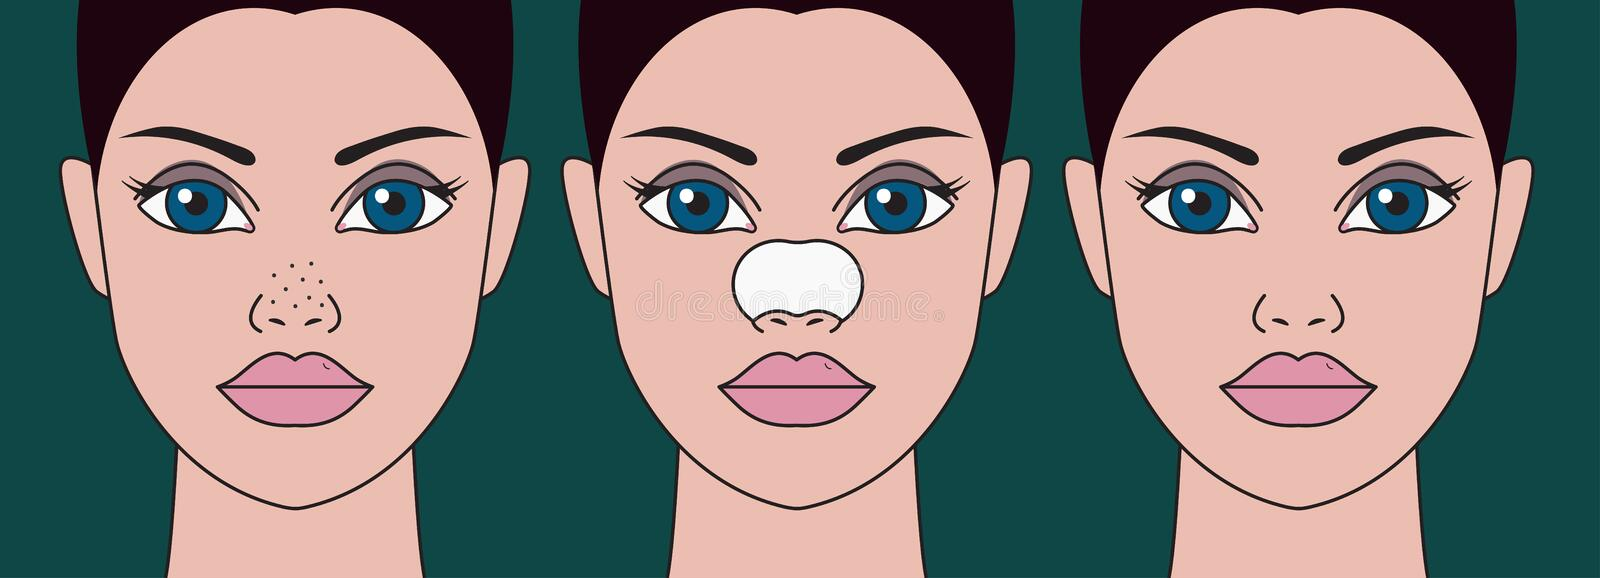 Cleansing of blackheads. On nose cosmetic strips, dots on nose. Patches for cleaning skin. Home skin care. Vector illustration royalty free illustration